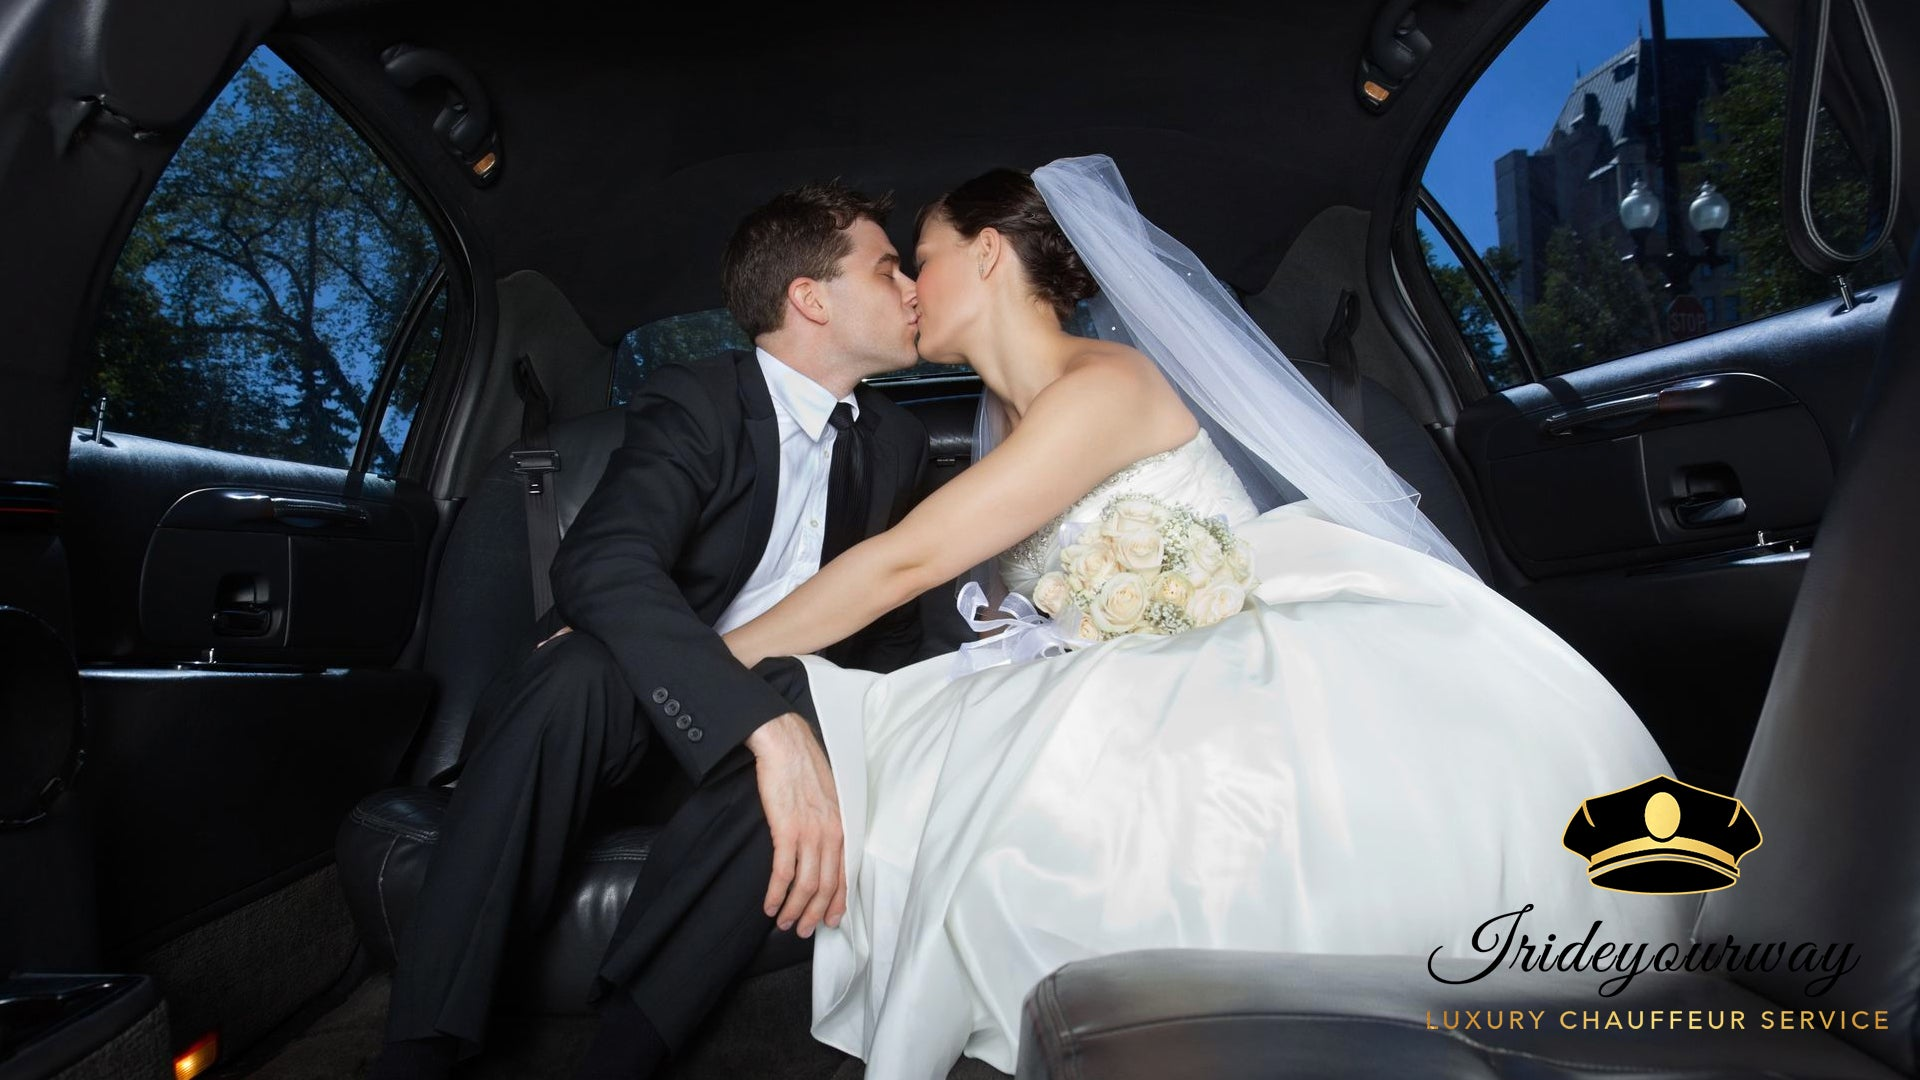 Wedding Luxury Chauffeur Service Las Vegas